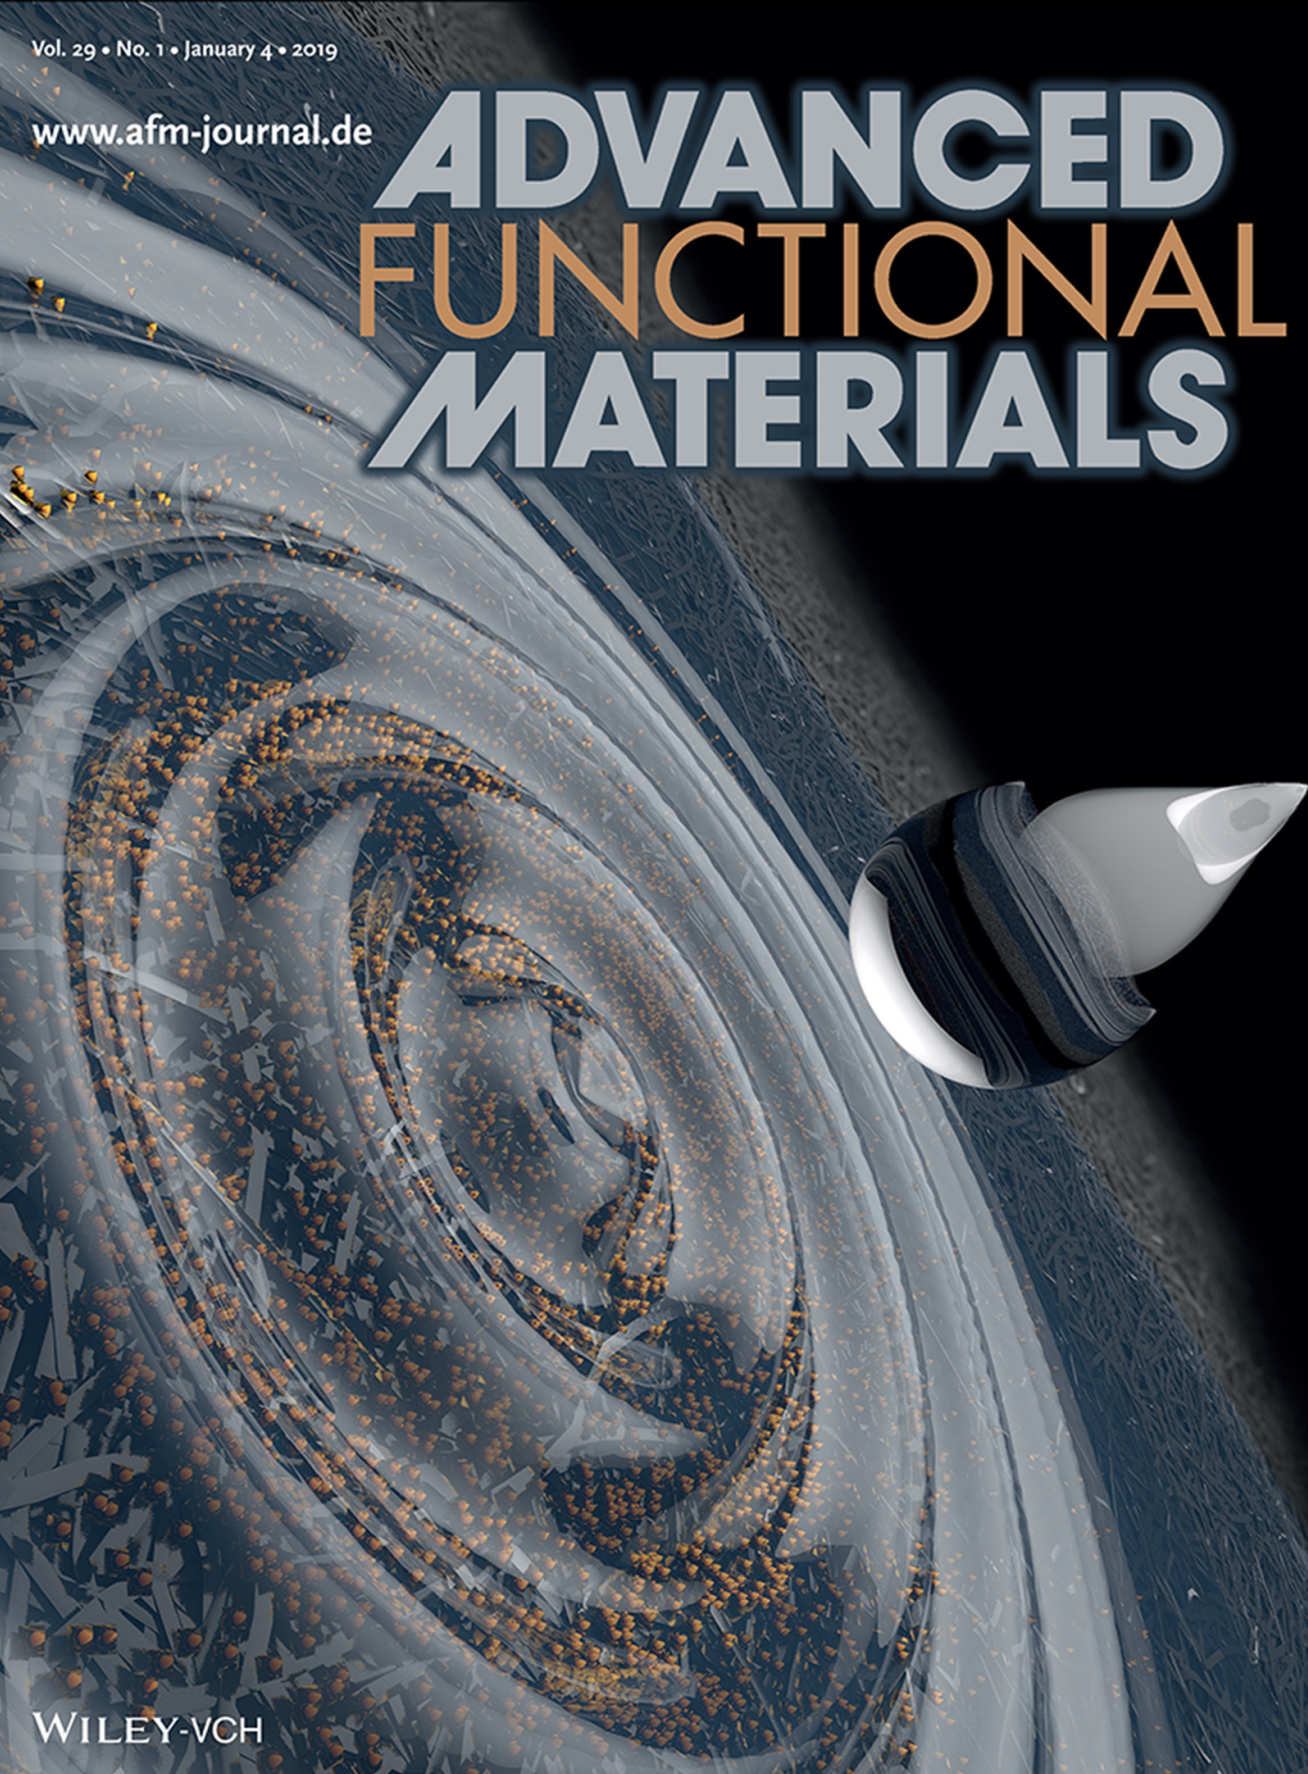 An illutration of the technique on the cover of the journal